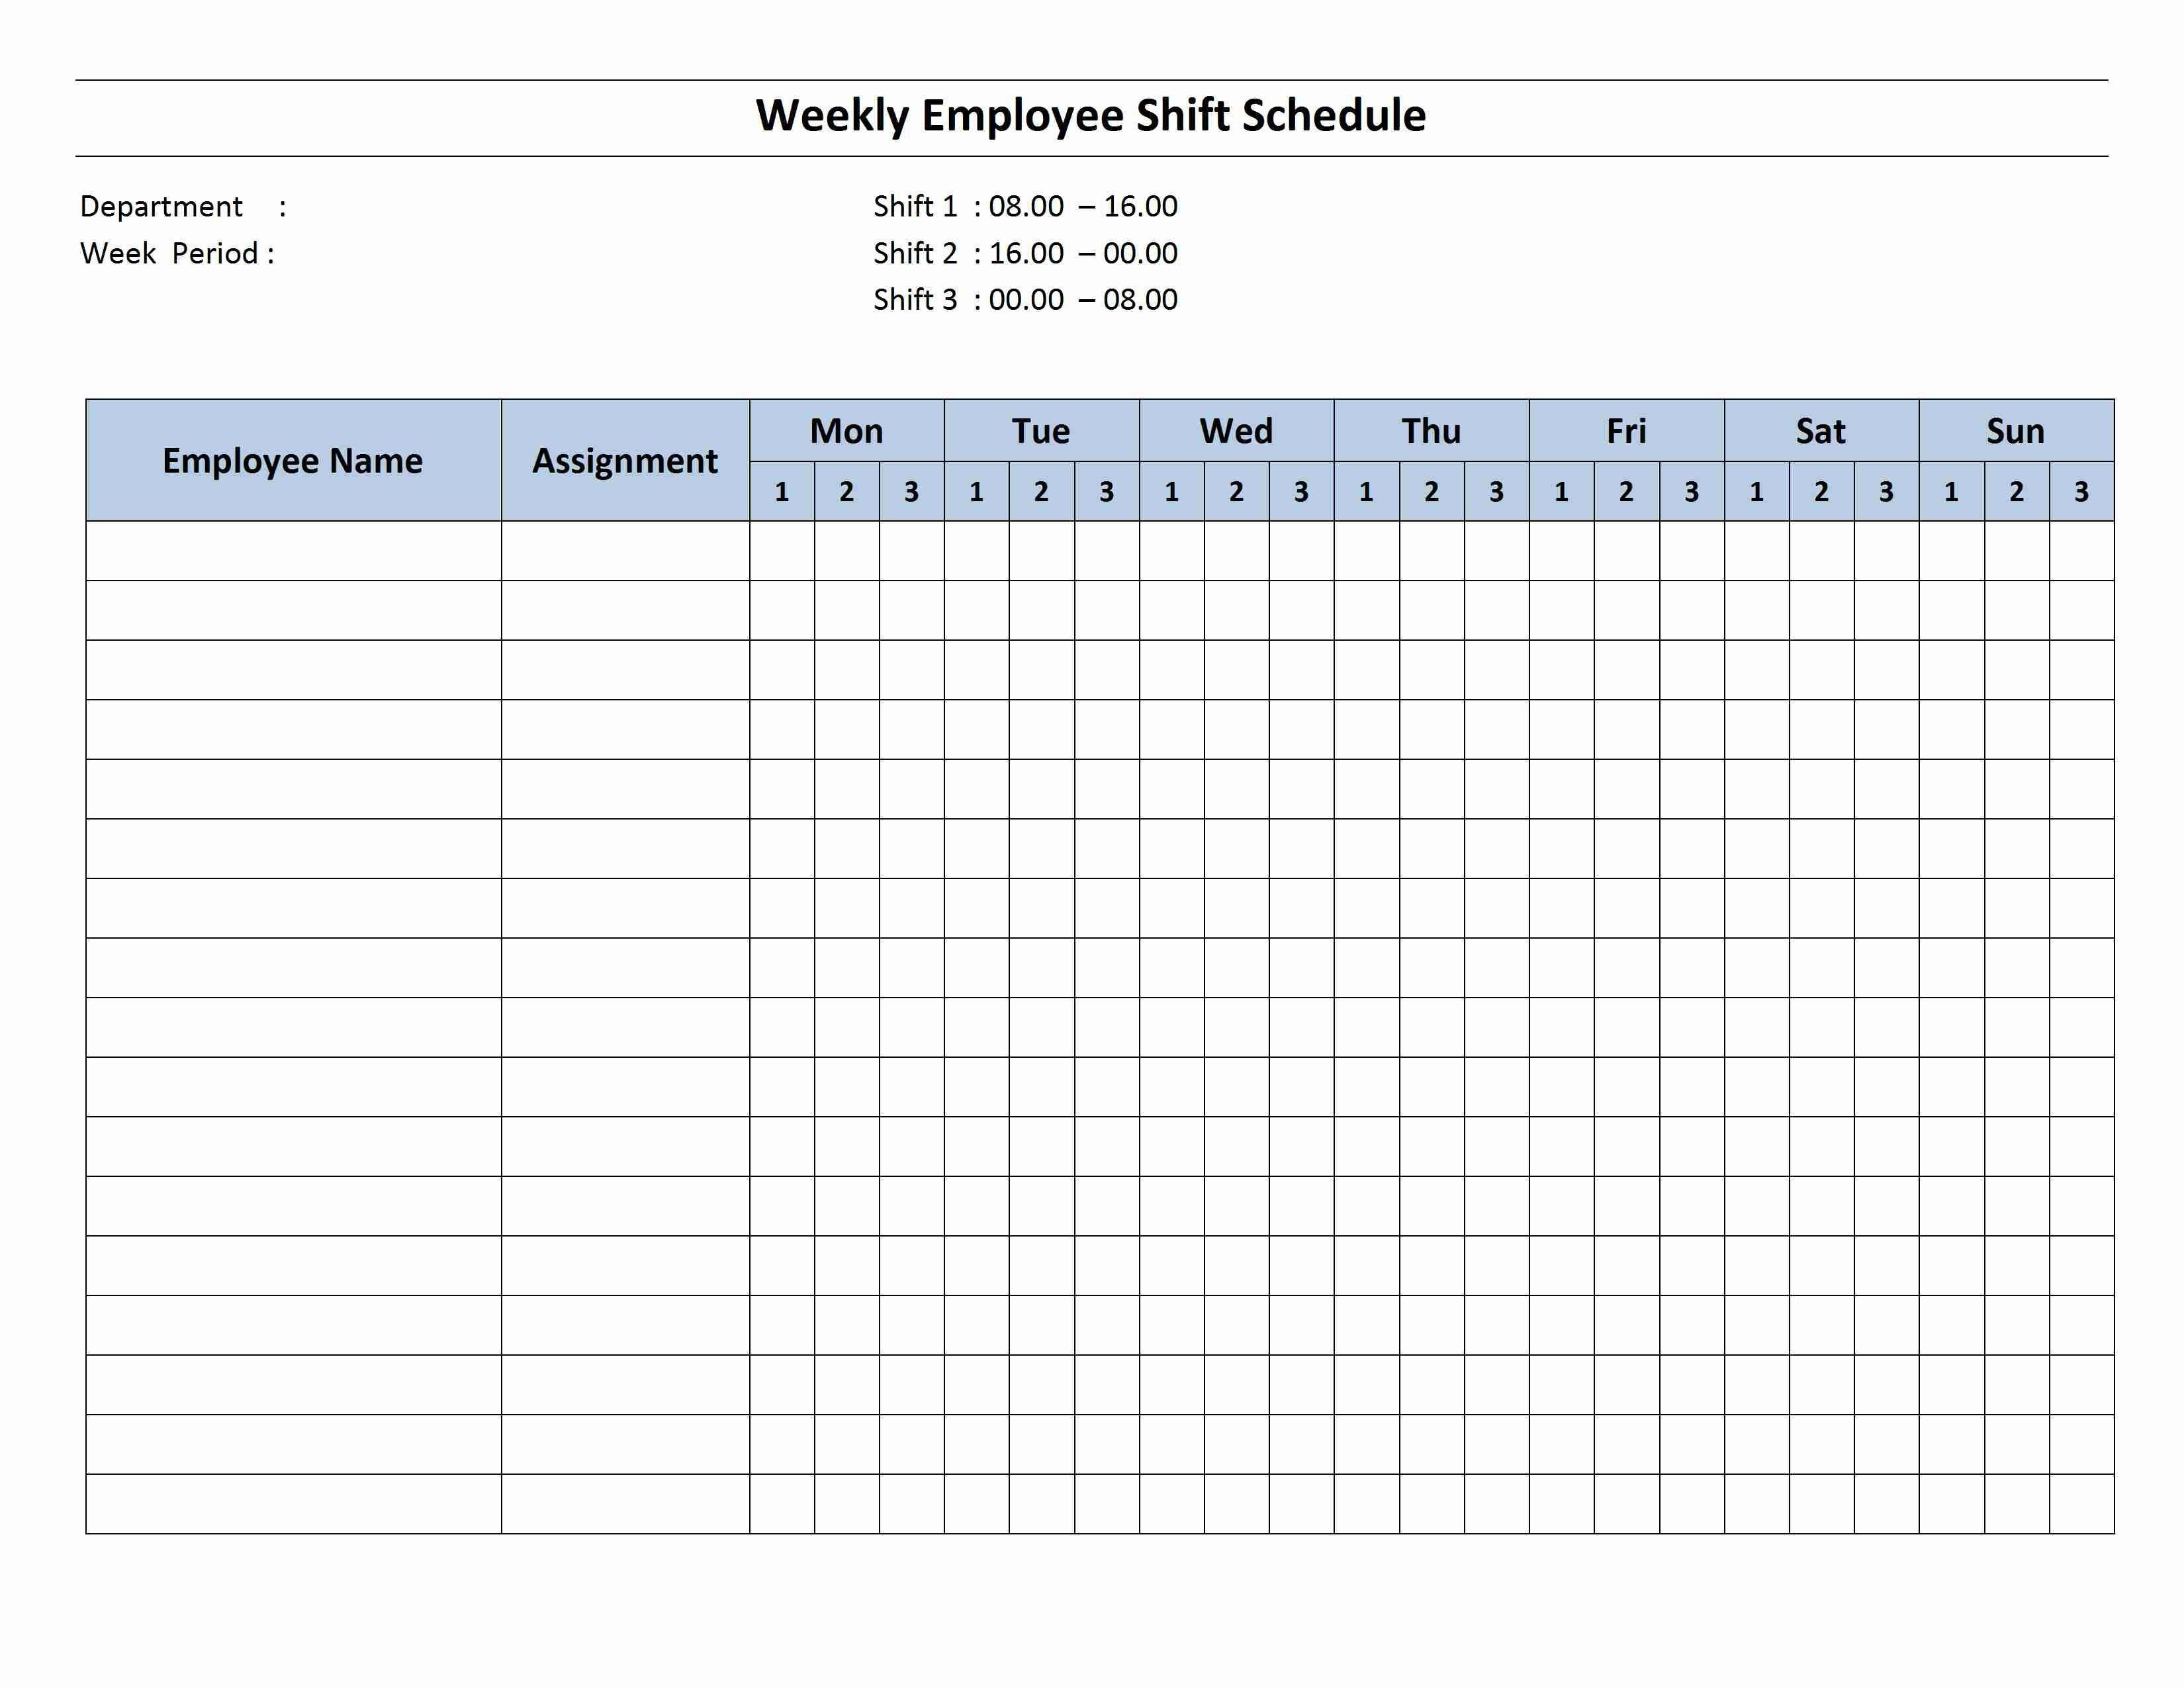 005 Stunning Employee Shift Scheduling Template Picture  Schedule Google Sheet Work Plan Word Weekly Excel FreeFull